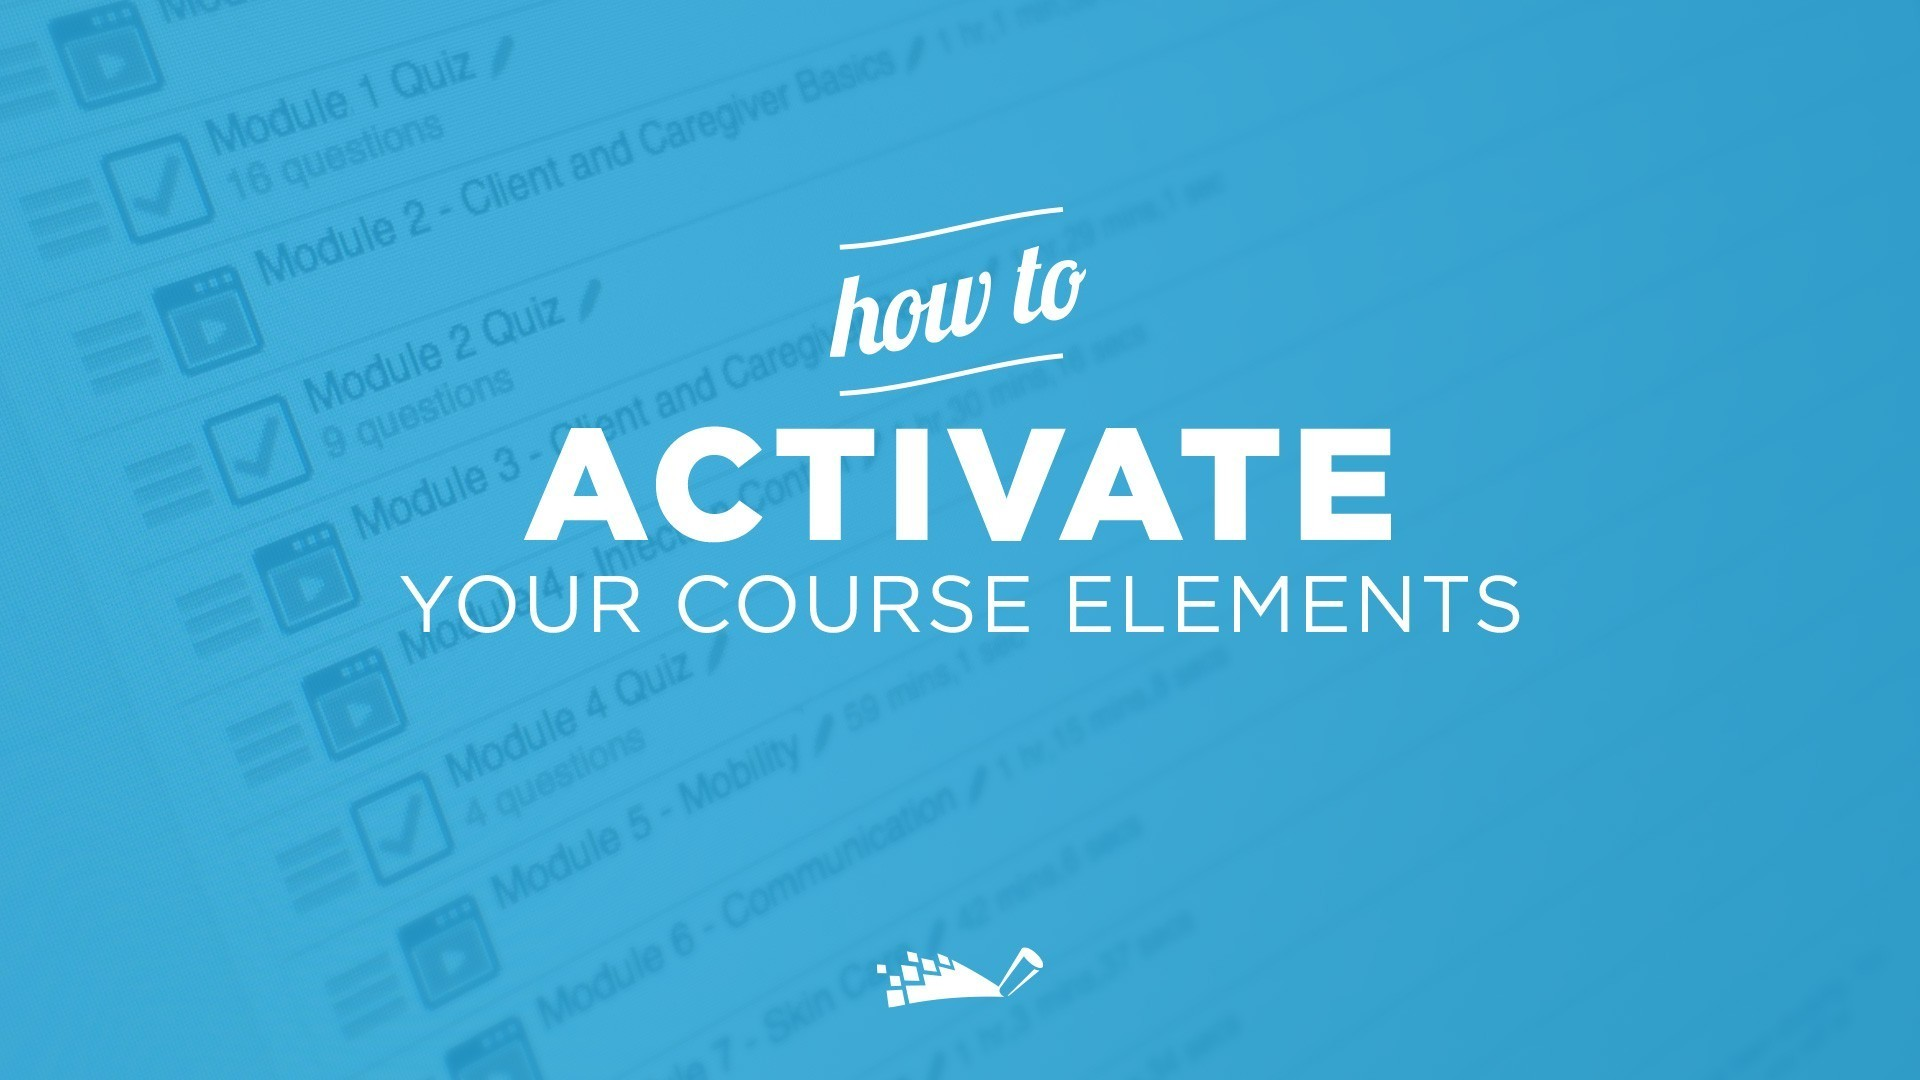 How To: Activate Your Course Elements | DigitalChalk Blog thumbnail